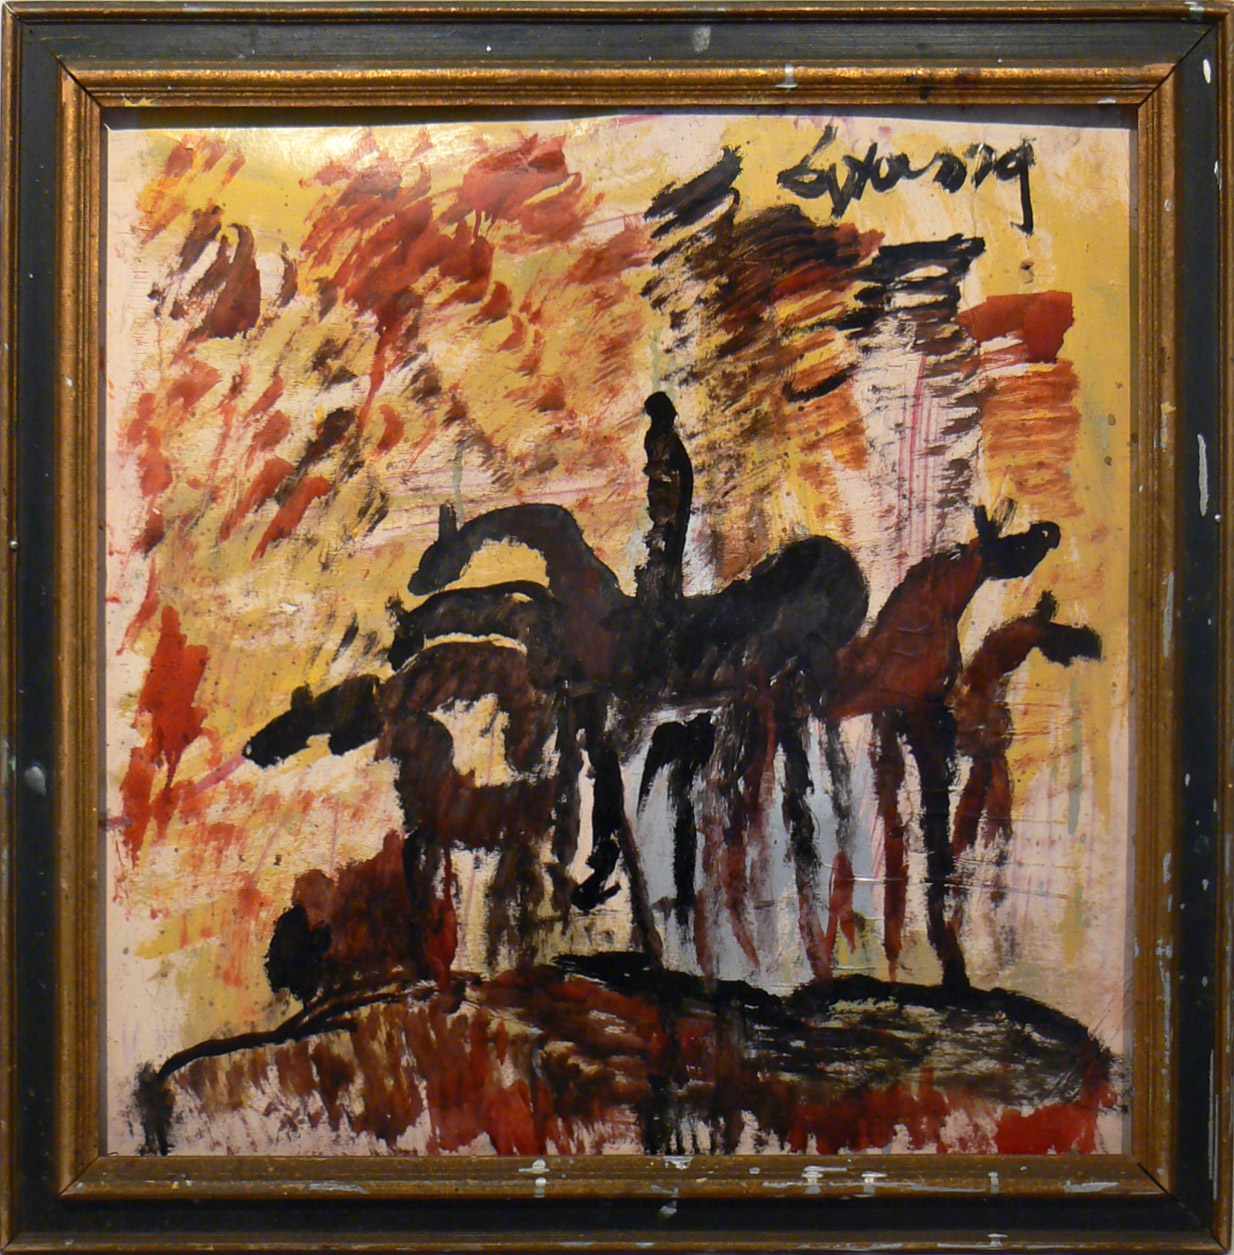 Purvis Young, Six Horses, c. 1985, mixed media on board, 30 1/2h x 29 1/2w in.